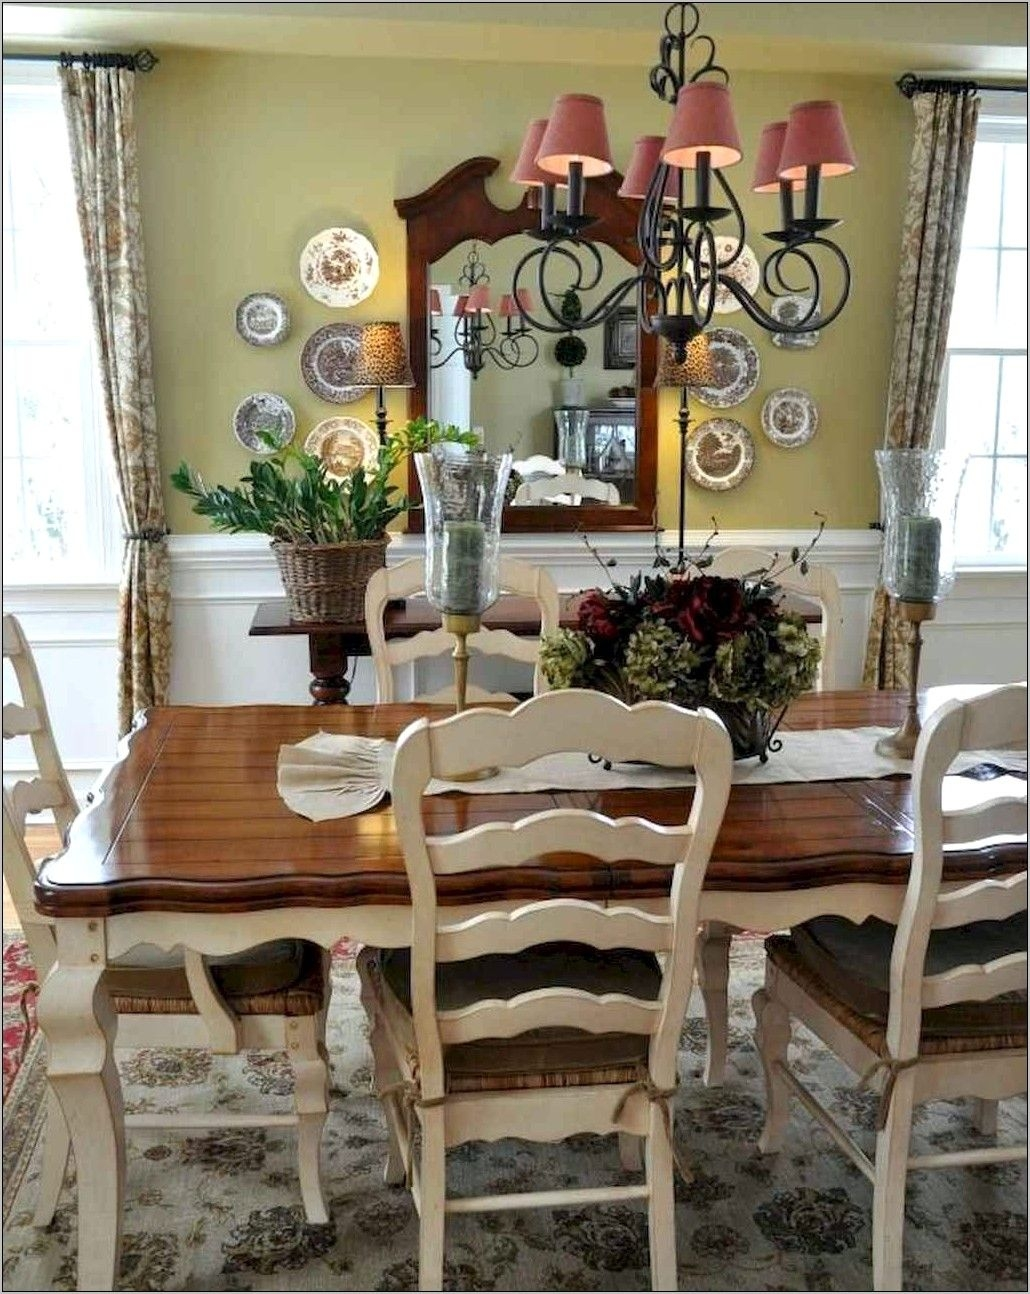 French Country Dining Table You Ll Love, French Country Style Dining Room Table And Chairs